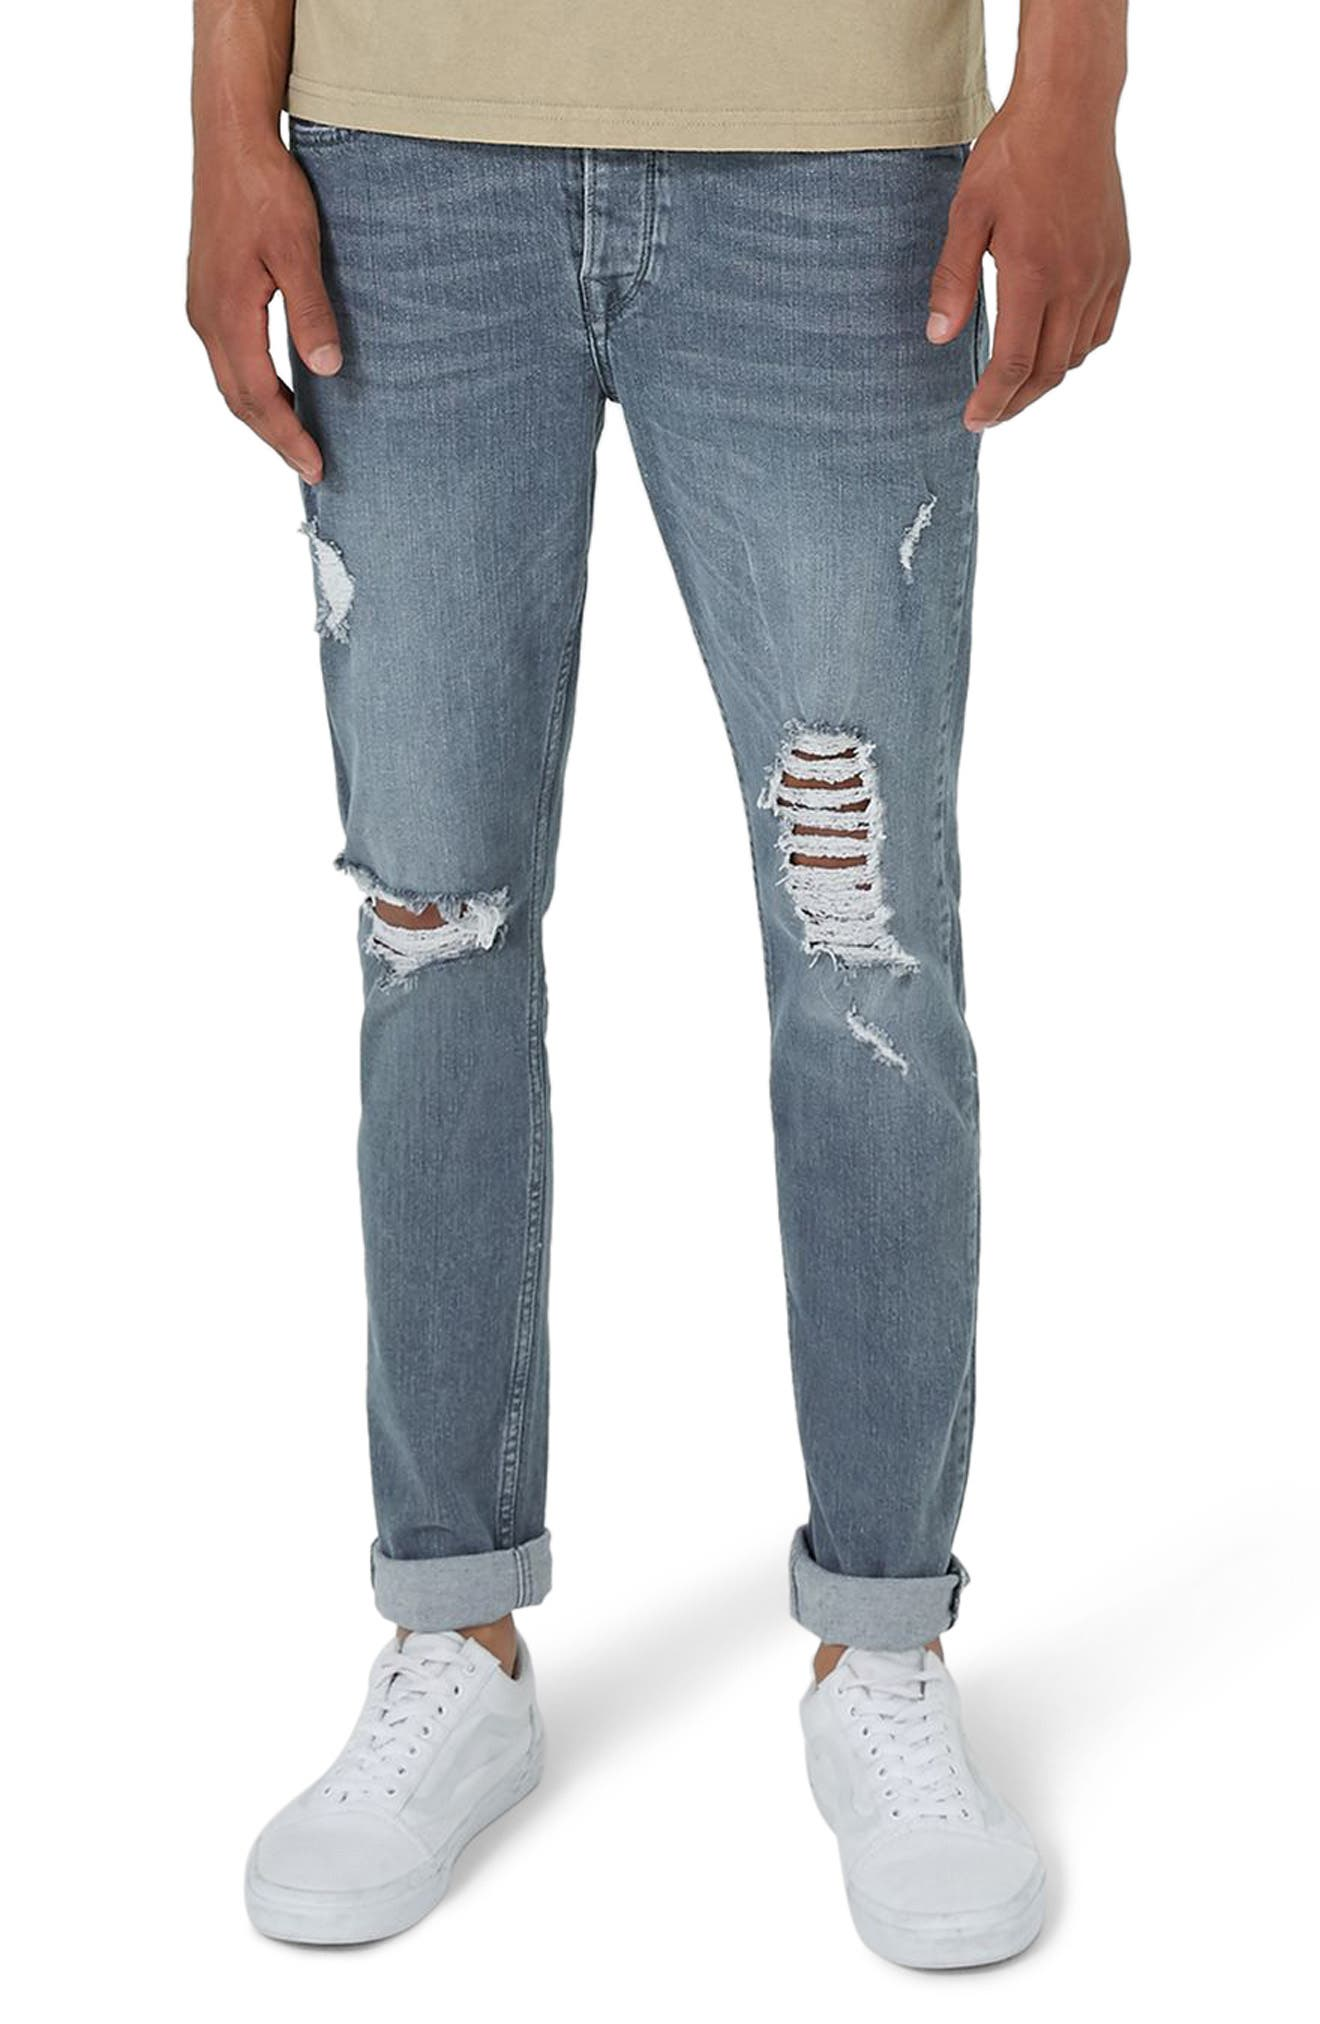 Extreme Rip Stretch Jeans,                         Main,                         color, Grey